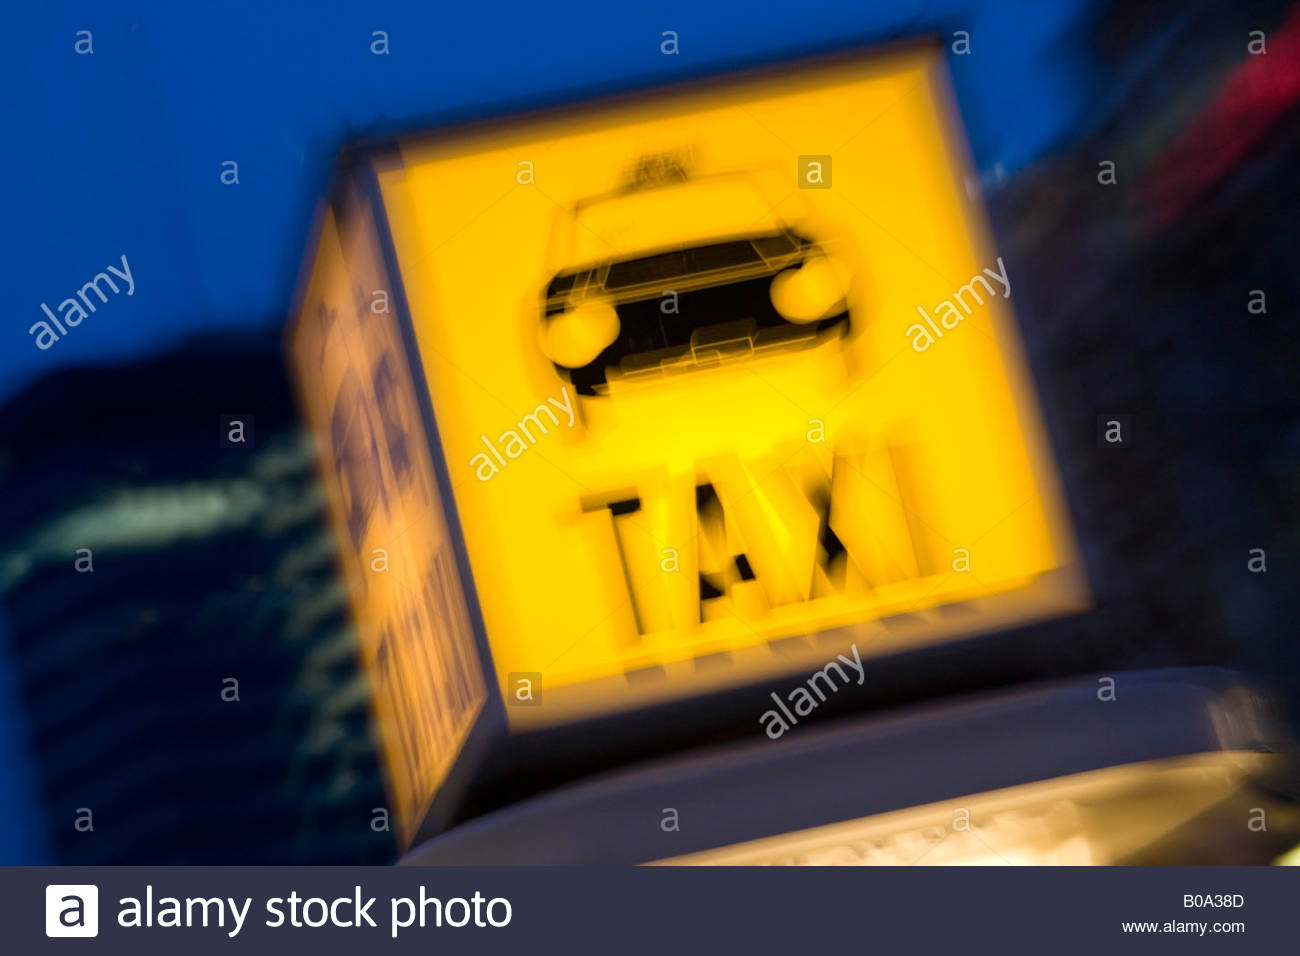 neon sign on taxi stand - Stock Image